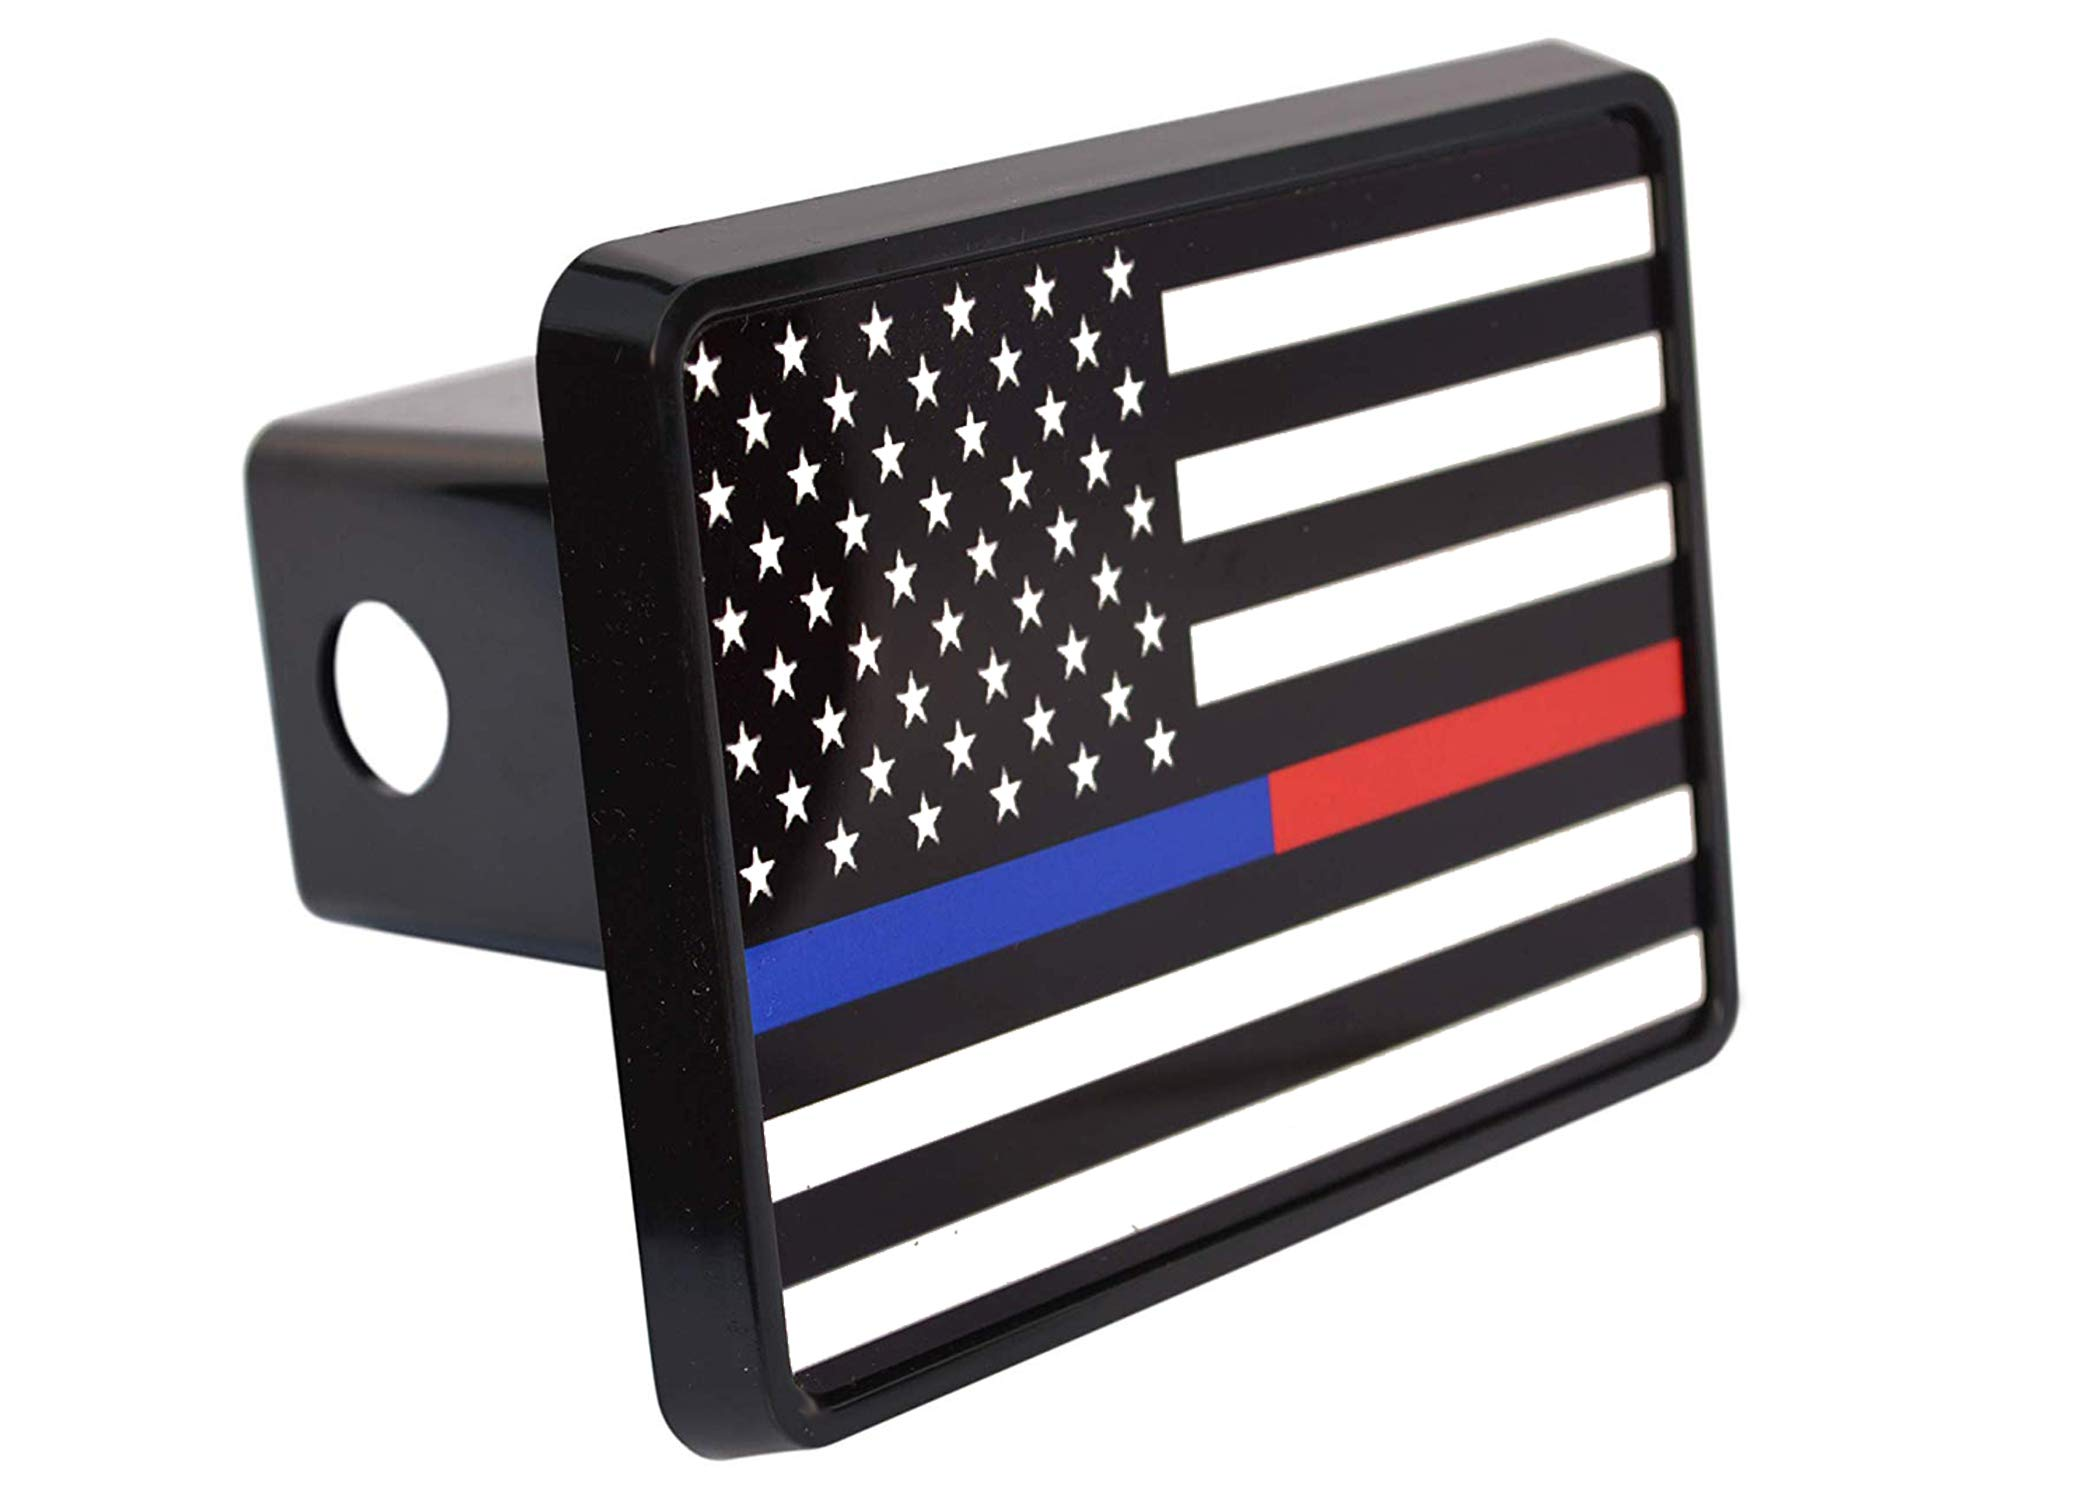 Thin Blue Red Line Lives Matter Flag Trailer Hitch Cover Plug US Police Officer Firefighter Flag by Rogue River Tactical